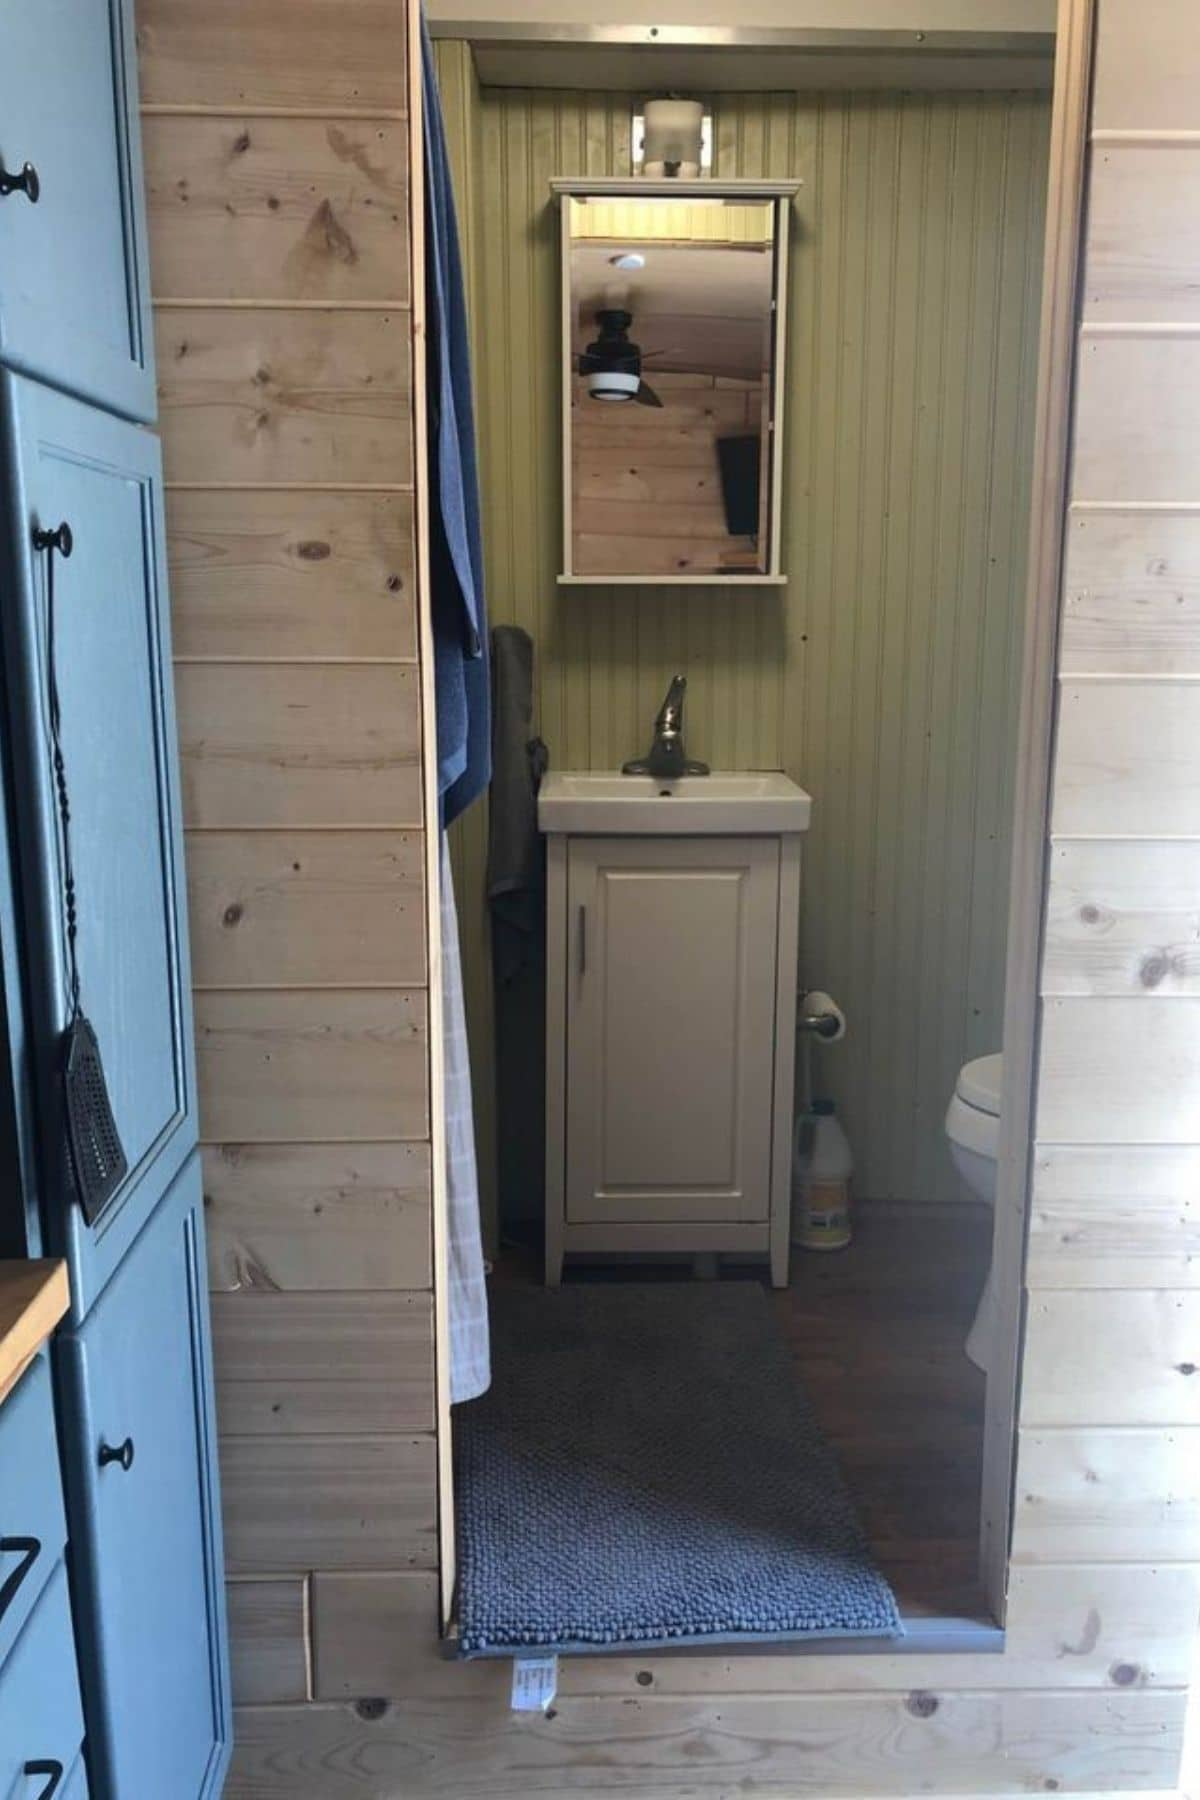 View into bathroom from kitchenette